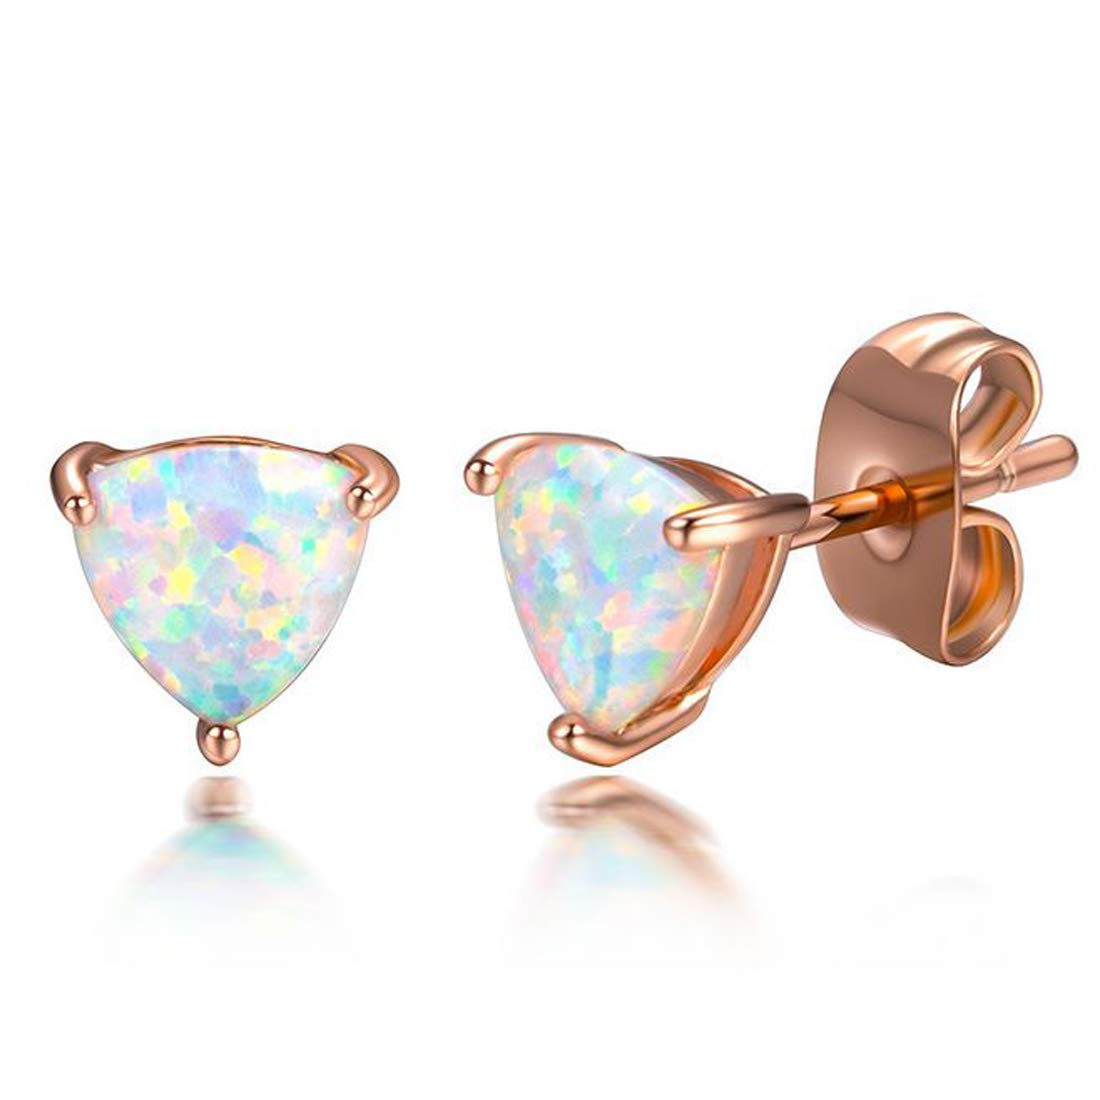 Peony.T Rose Gold Plated Triangle Opal Stud Earrings For Sensitive Ears Can Be A Gift